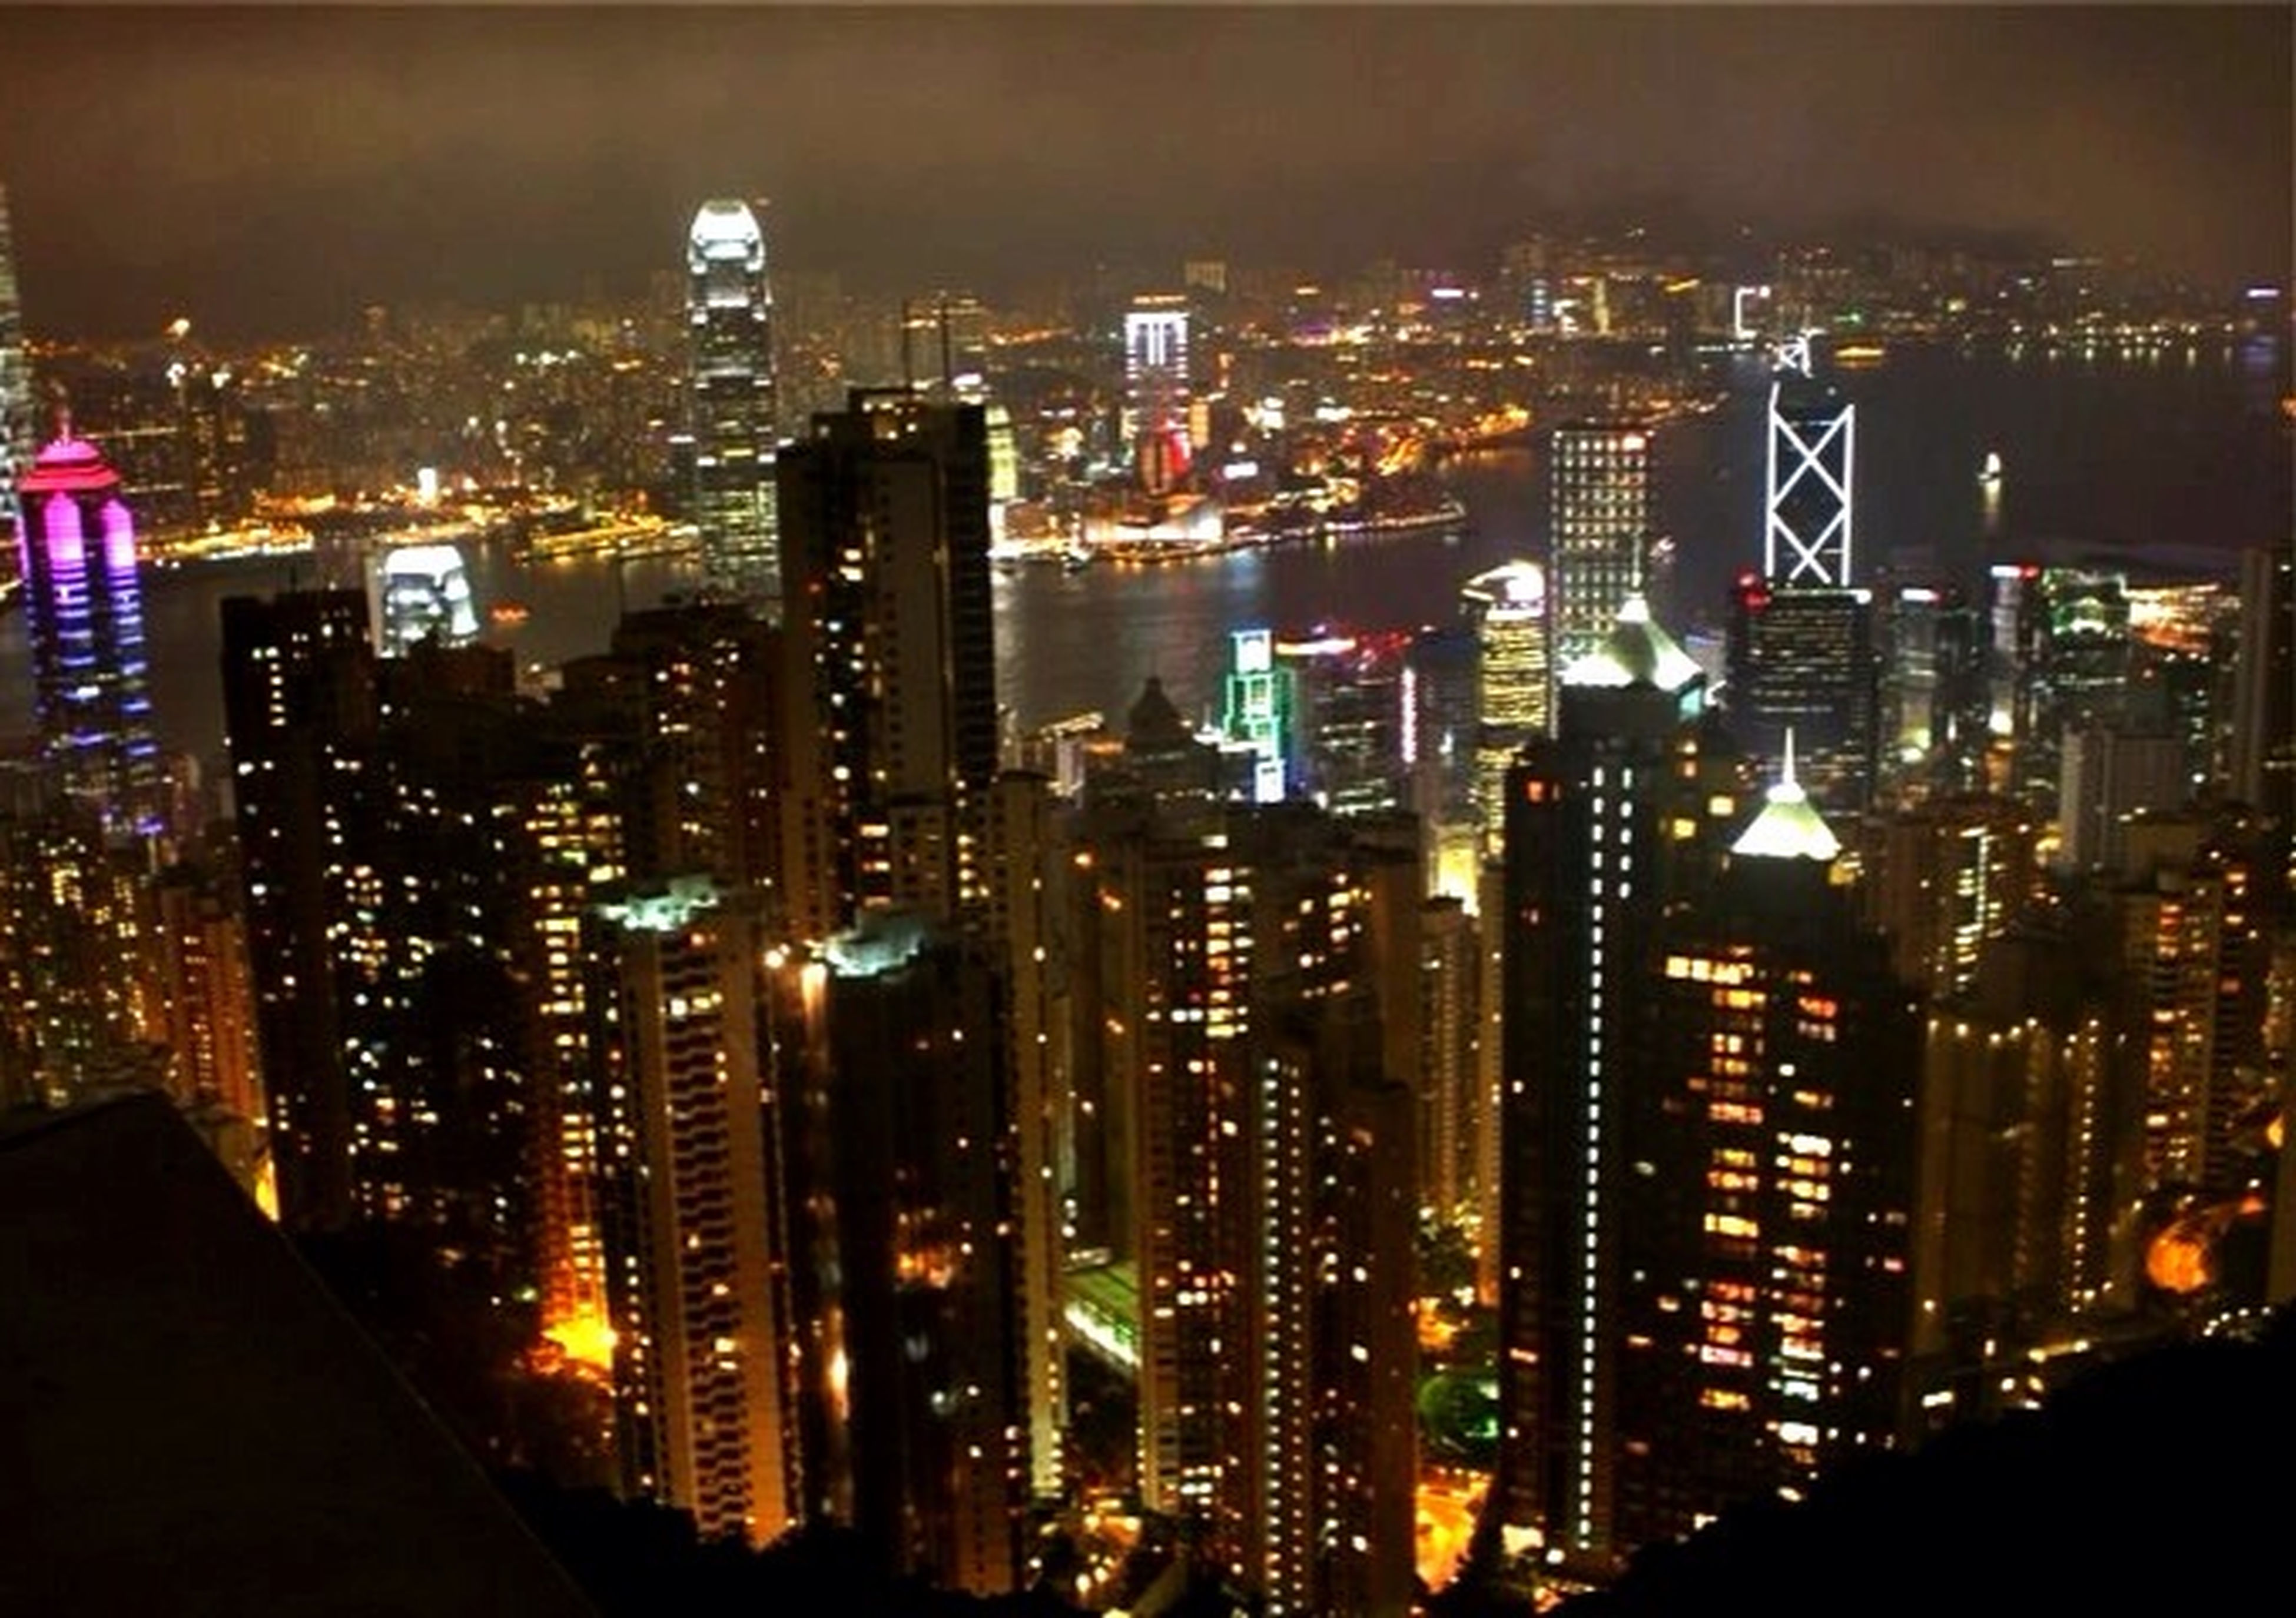 illuminated, city, night, cityscape, building exterior, architecture, skyscraper, built structure, modern, crowded, tall - high, office building, tower, financial district, urban skyline, high angle view, city life, capital cities, residential building, downtown district